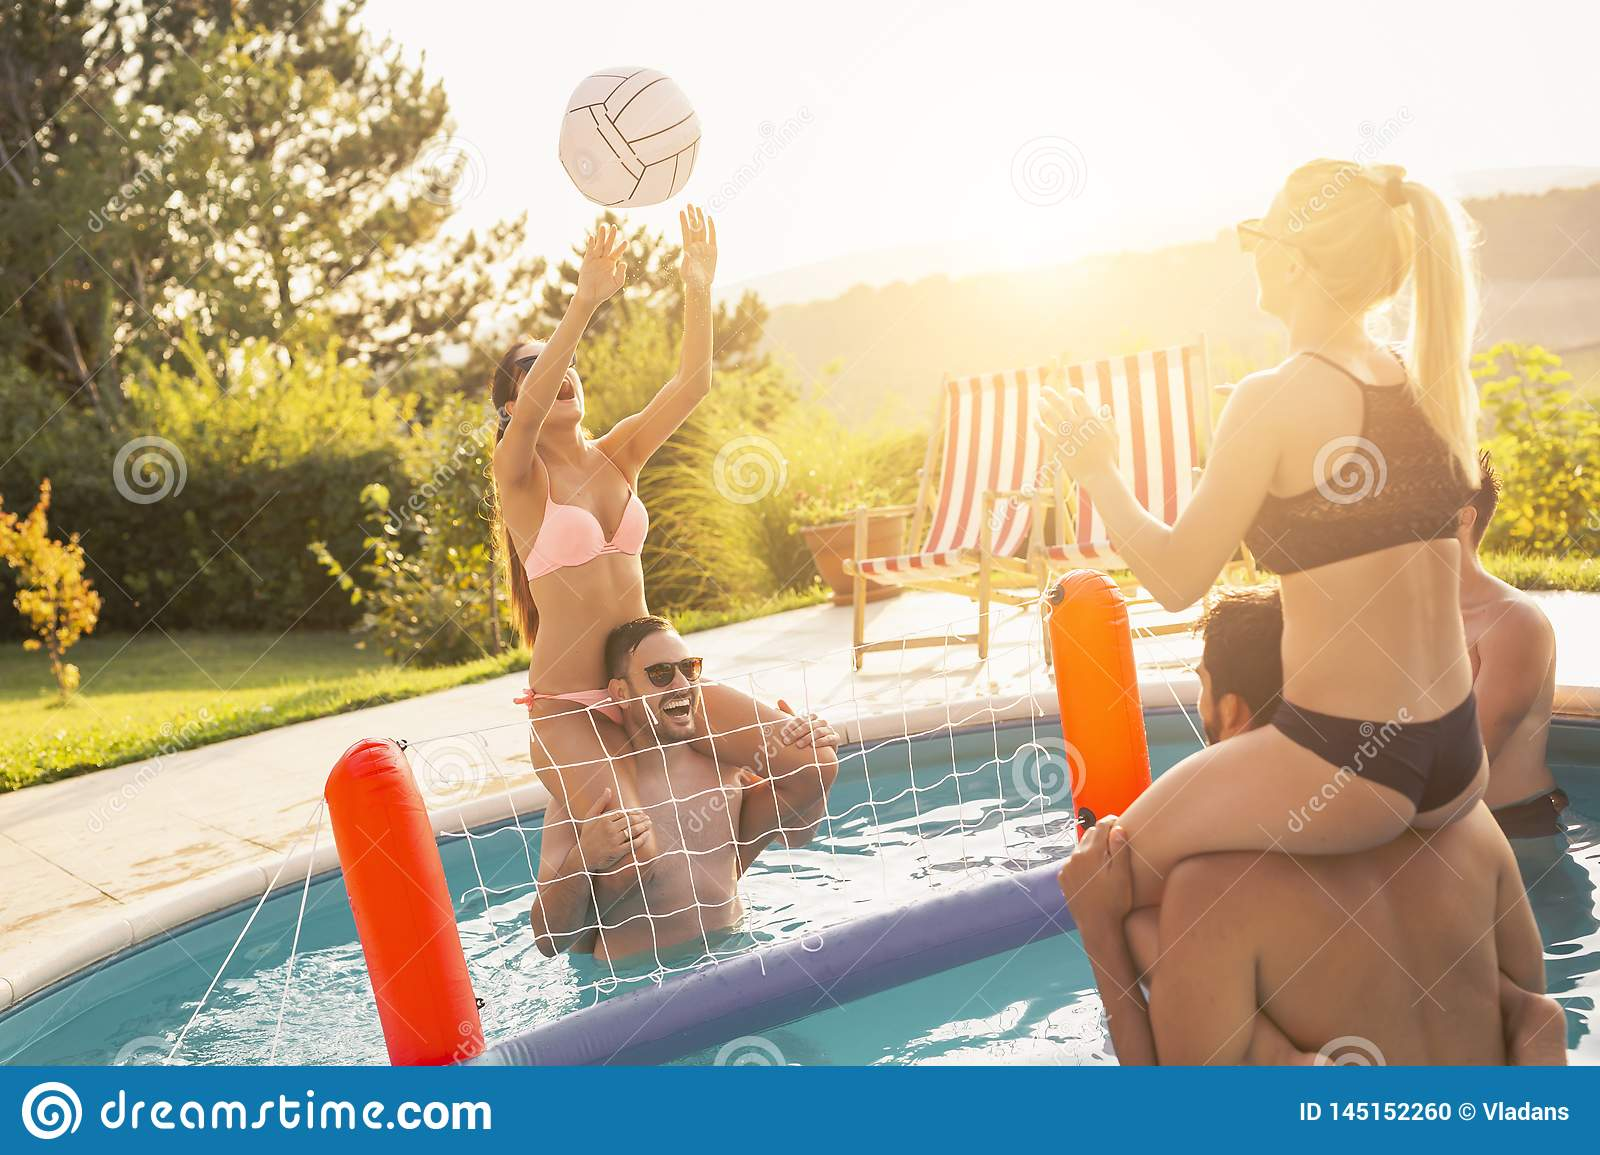 Playing volleyball in a swimming pool